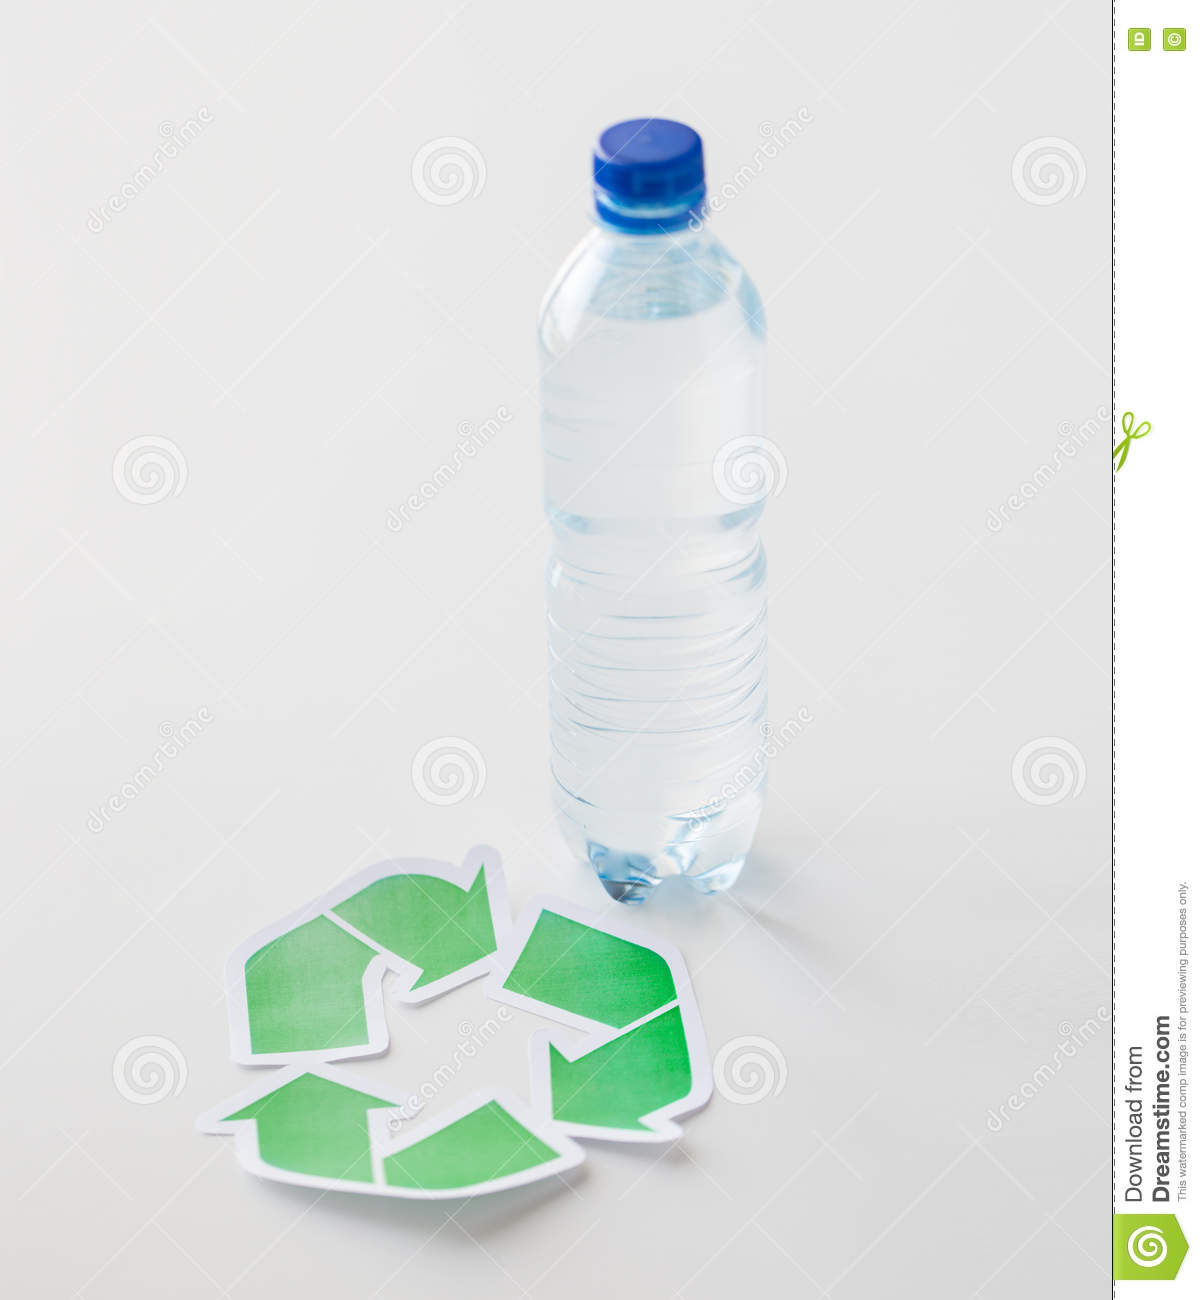 Plastic Bottle Recycling Close Up Of Plastic Bottle And Recycling Symbol Stock Photo